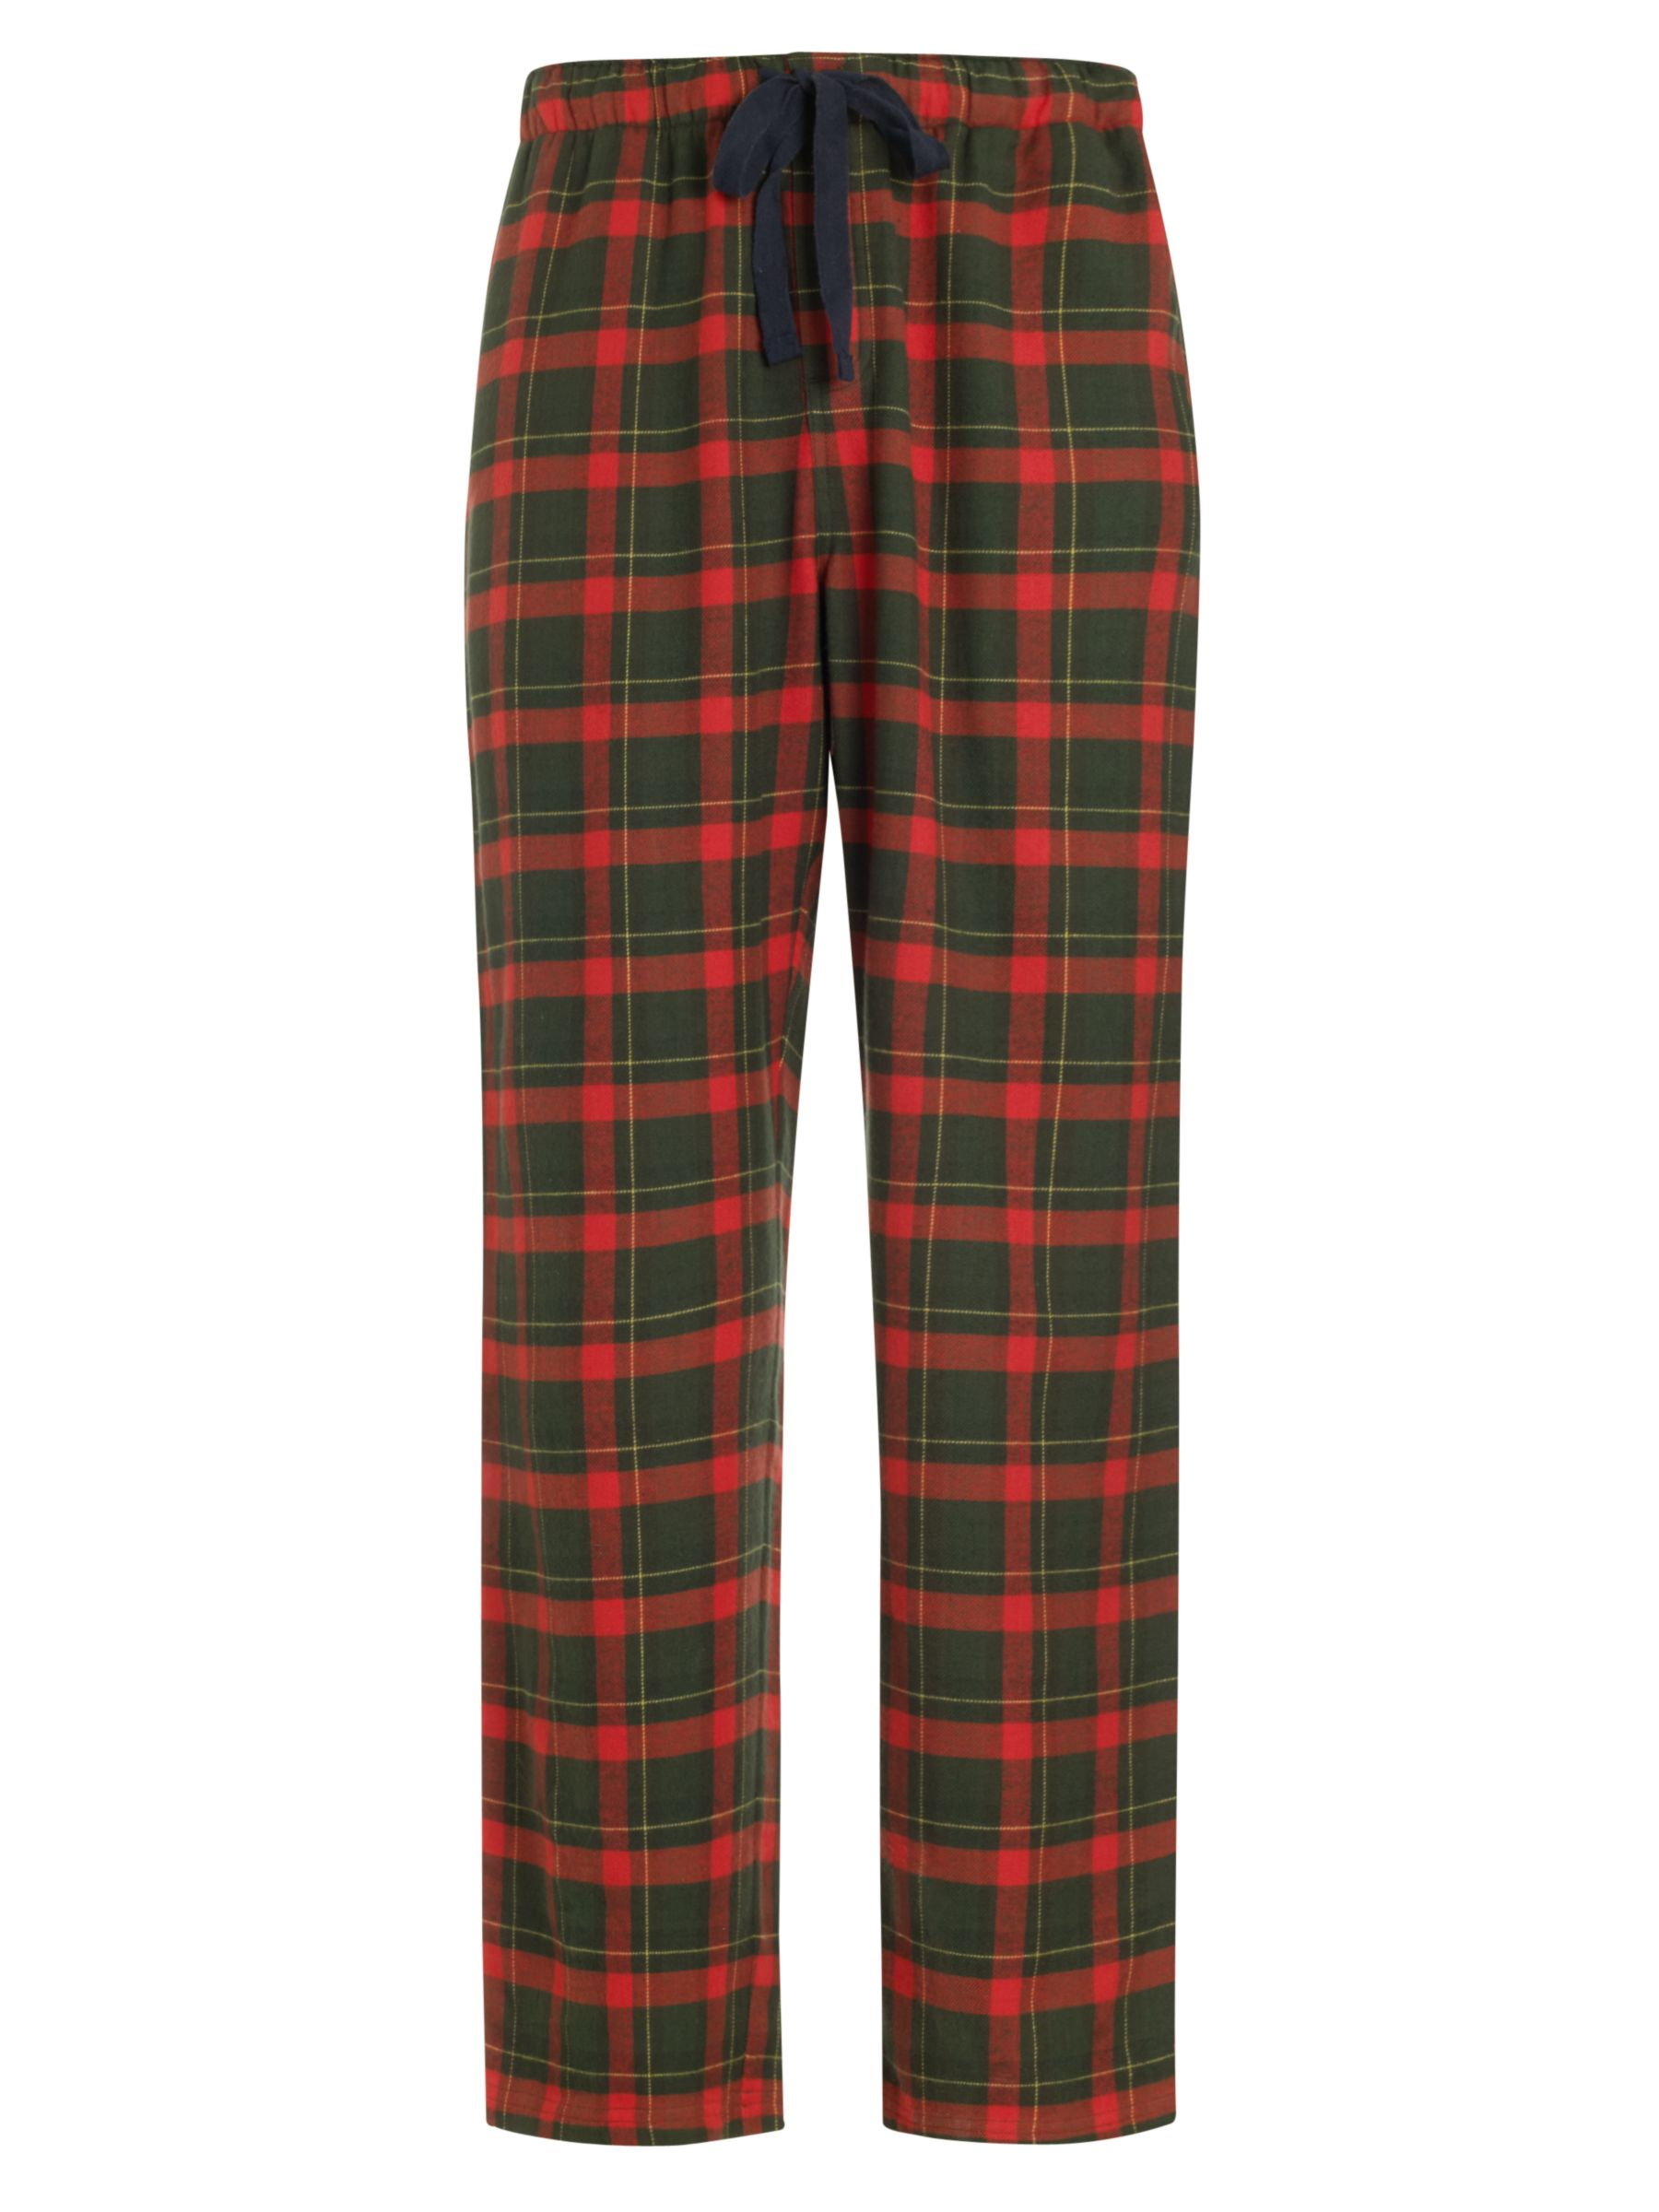 John Lewis Brushed Cotton Cotton Check Pyjama Bottoms, Red/Green